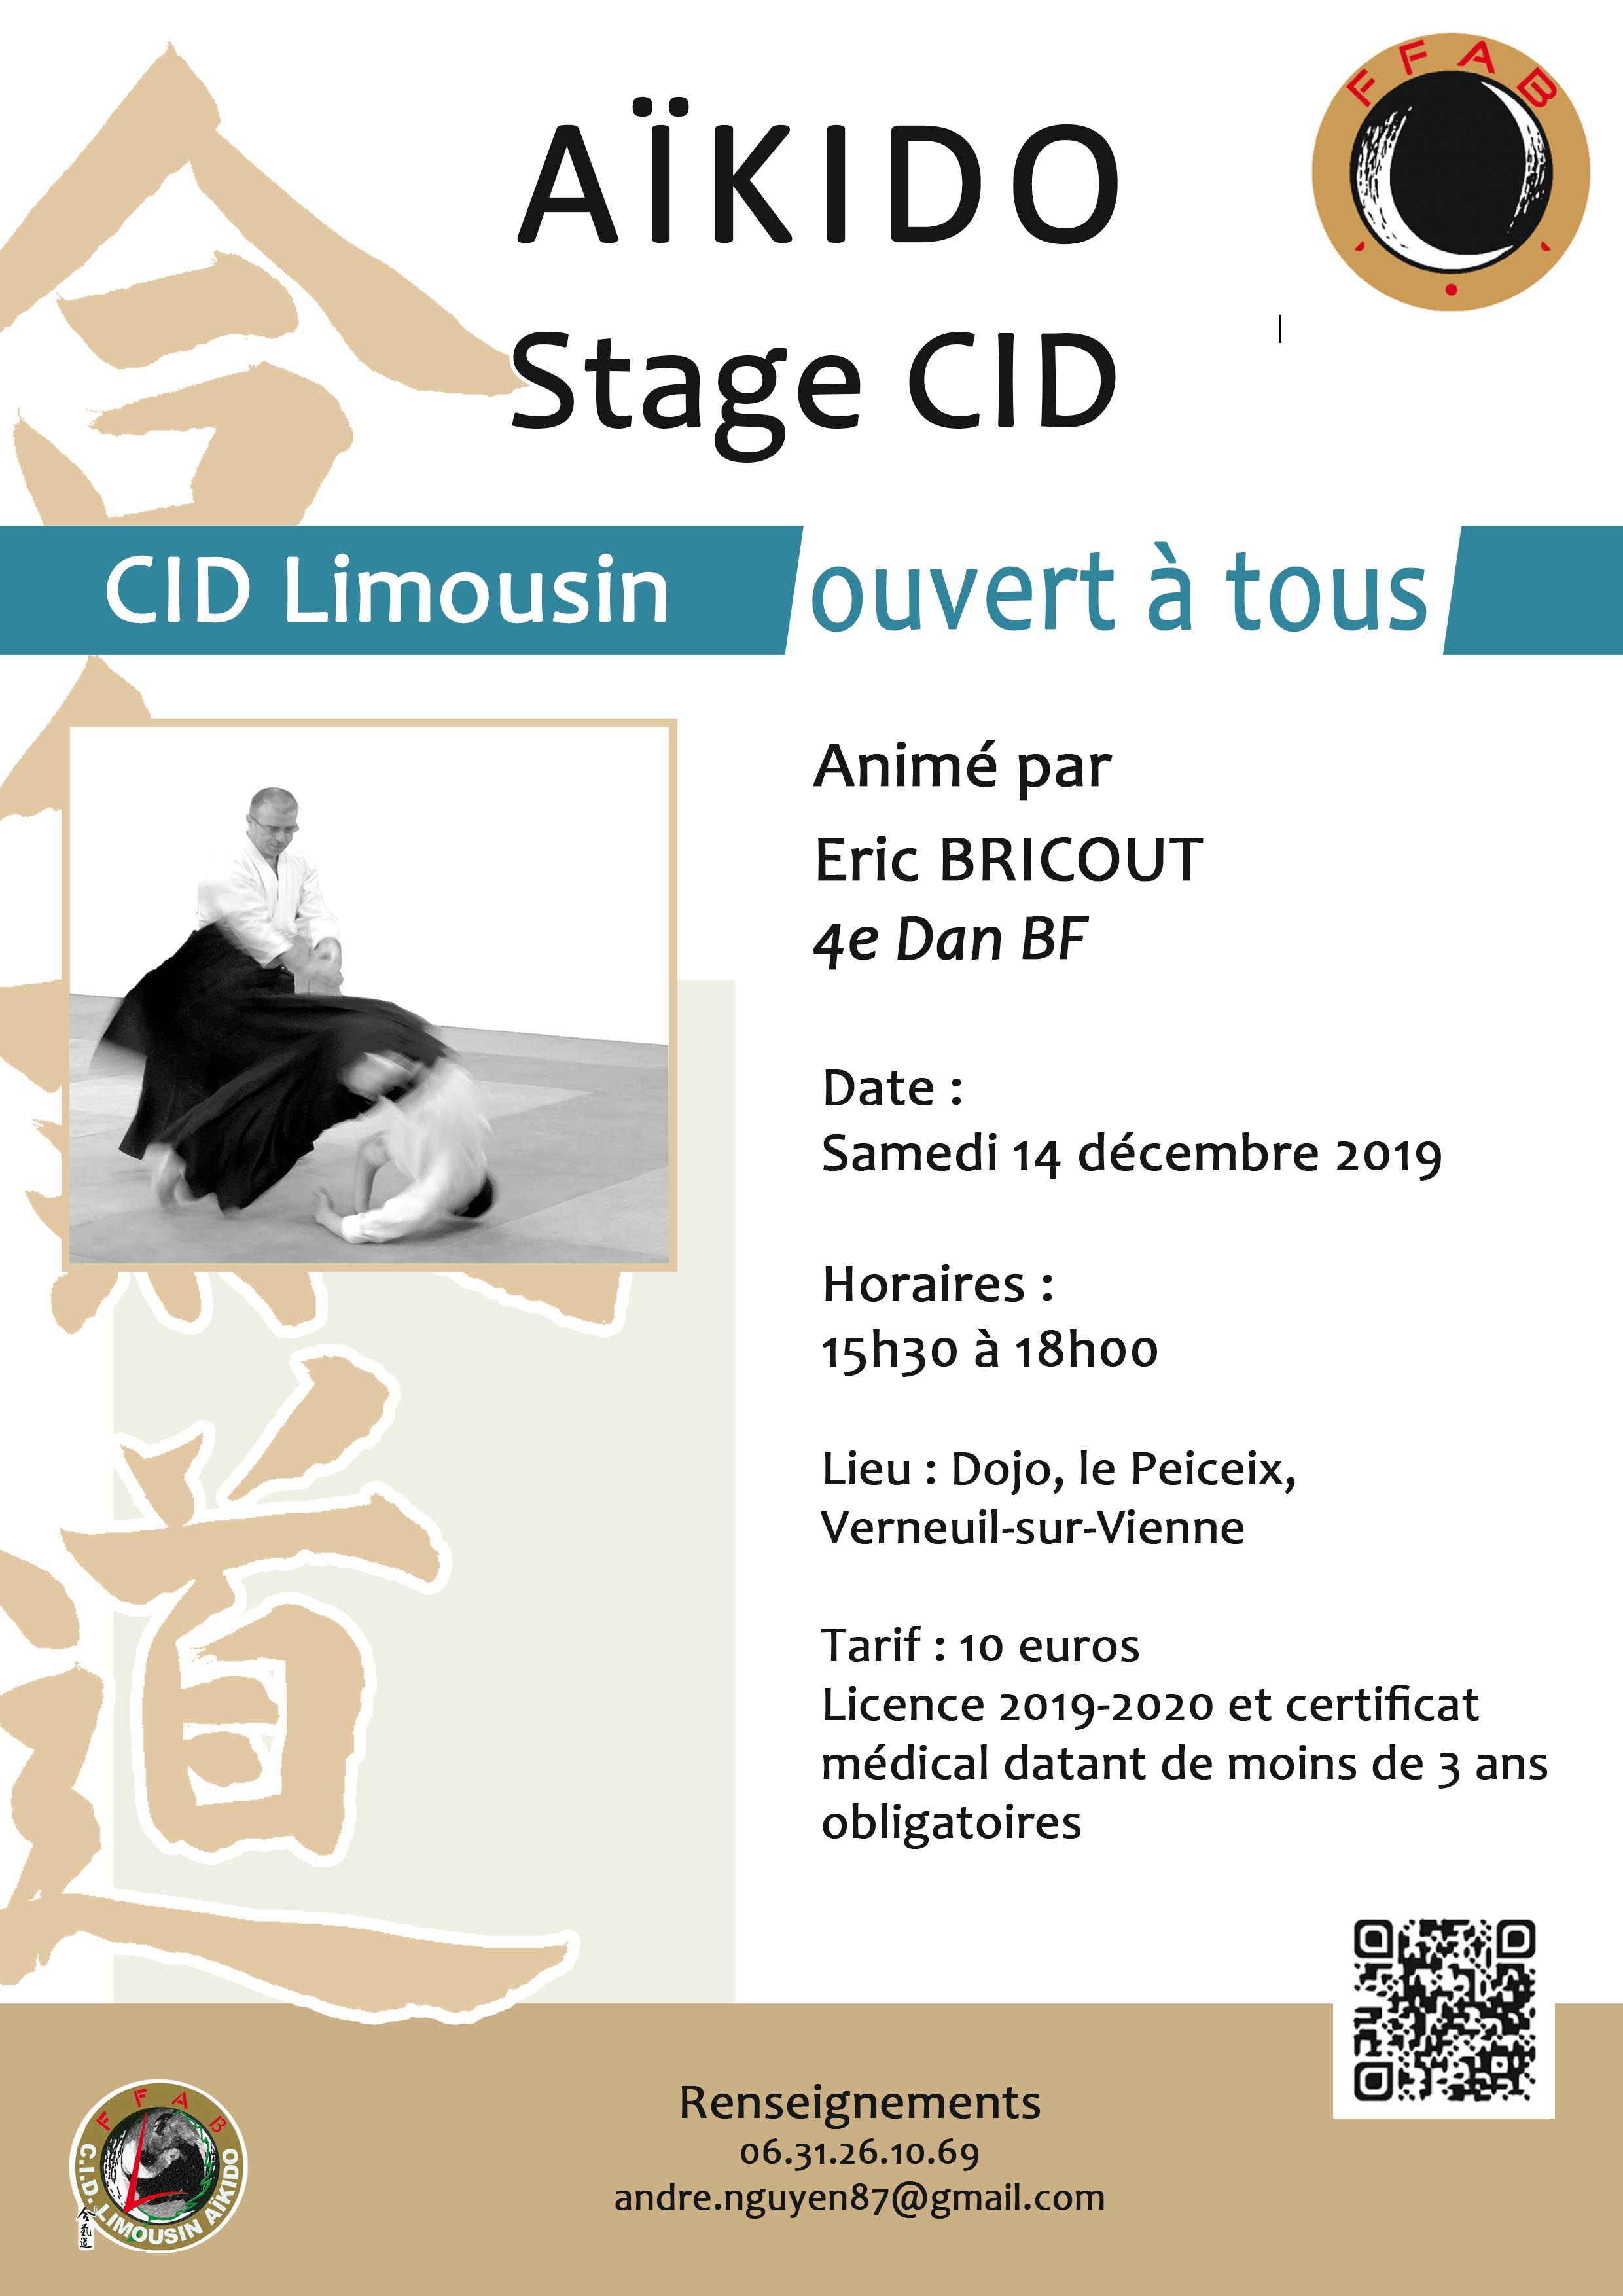 191214 04 affiche stage Eric Bricout Verneuil.jpg - 365,76 kB